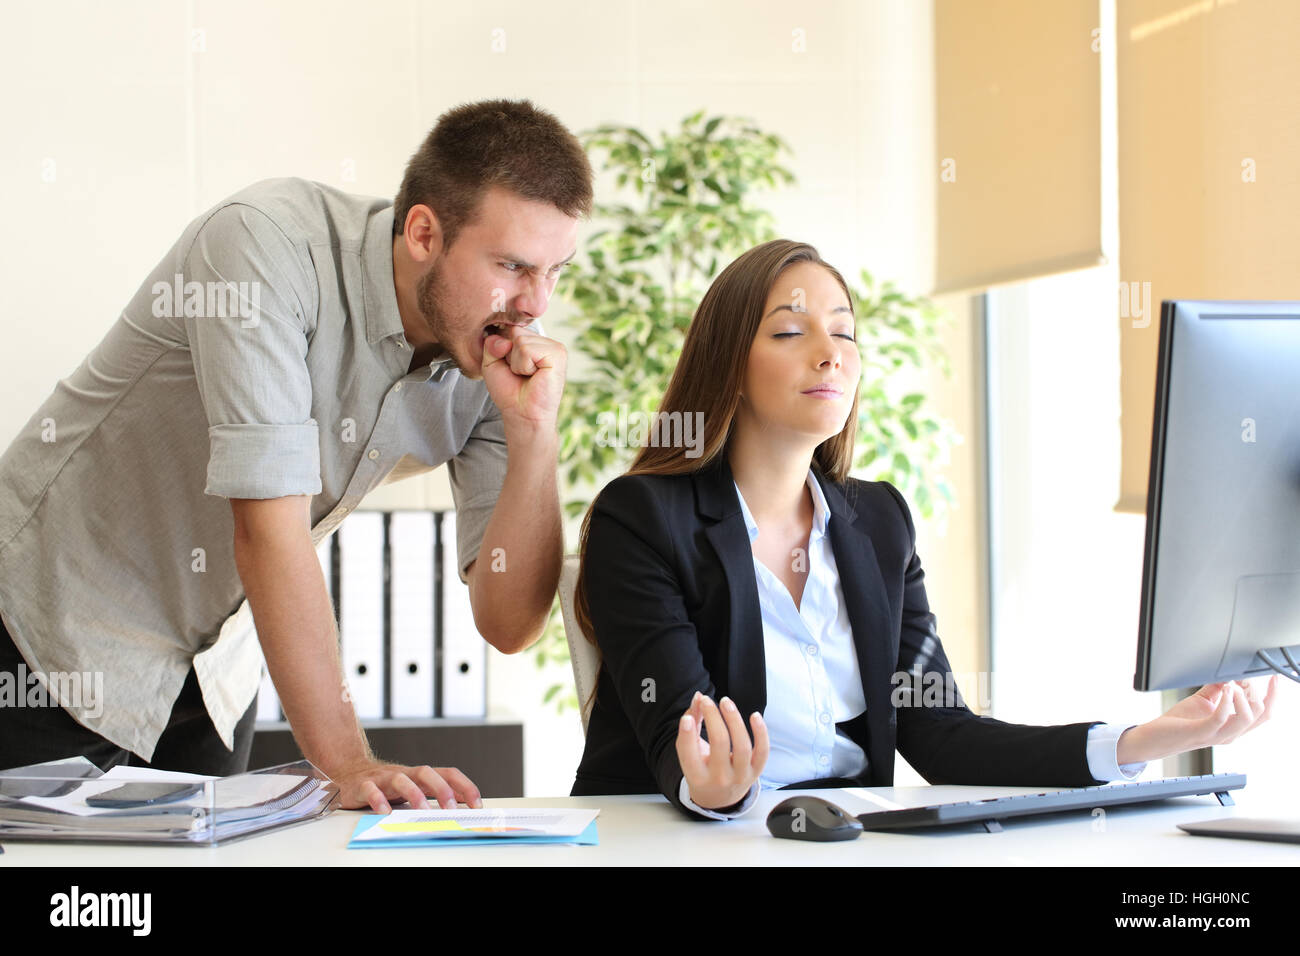 Angry businessman hating to his relaxed colleague at office - Stock Image